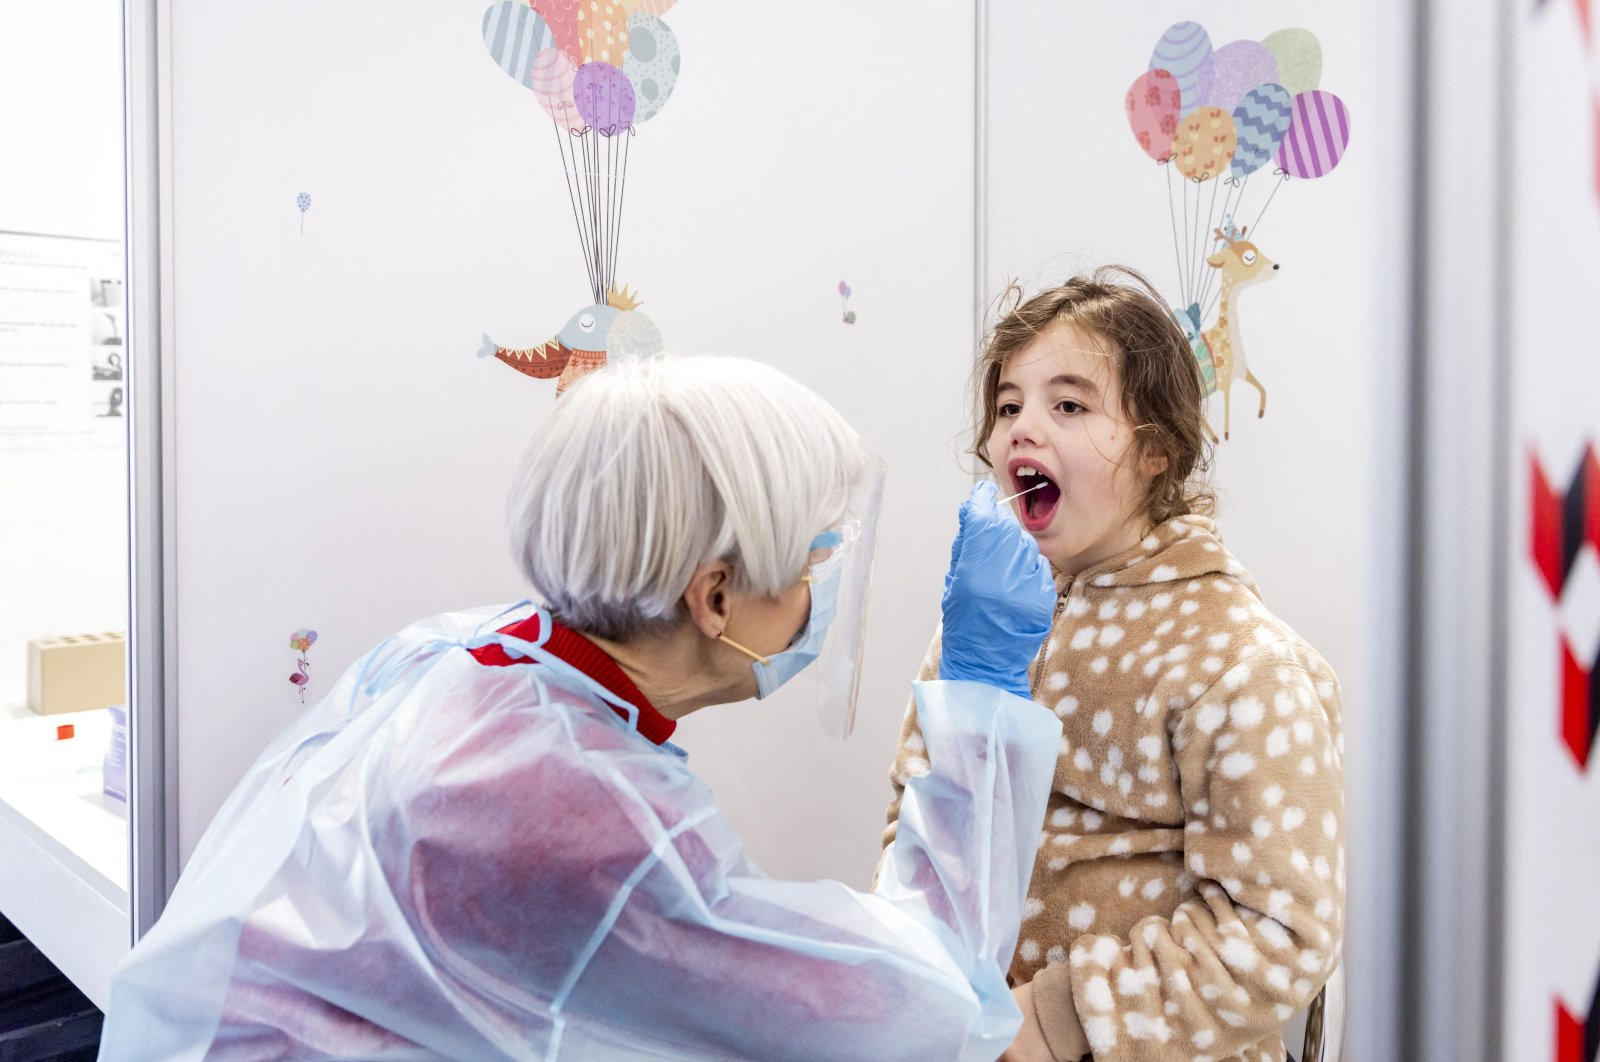 A health worker collects a throat swab sample from a child to test for COVID-19 at a special children's testing center in Amsterdam, the Netherlands, March 26, 2021. (AFP Photo)